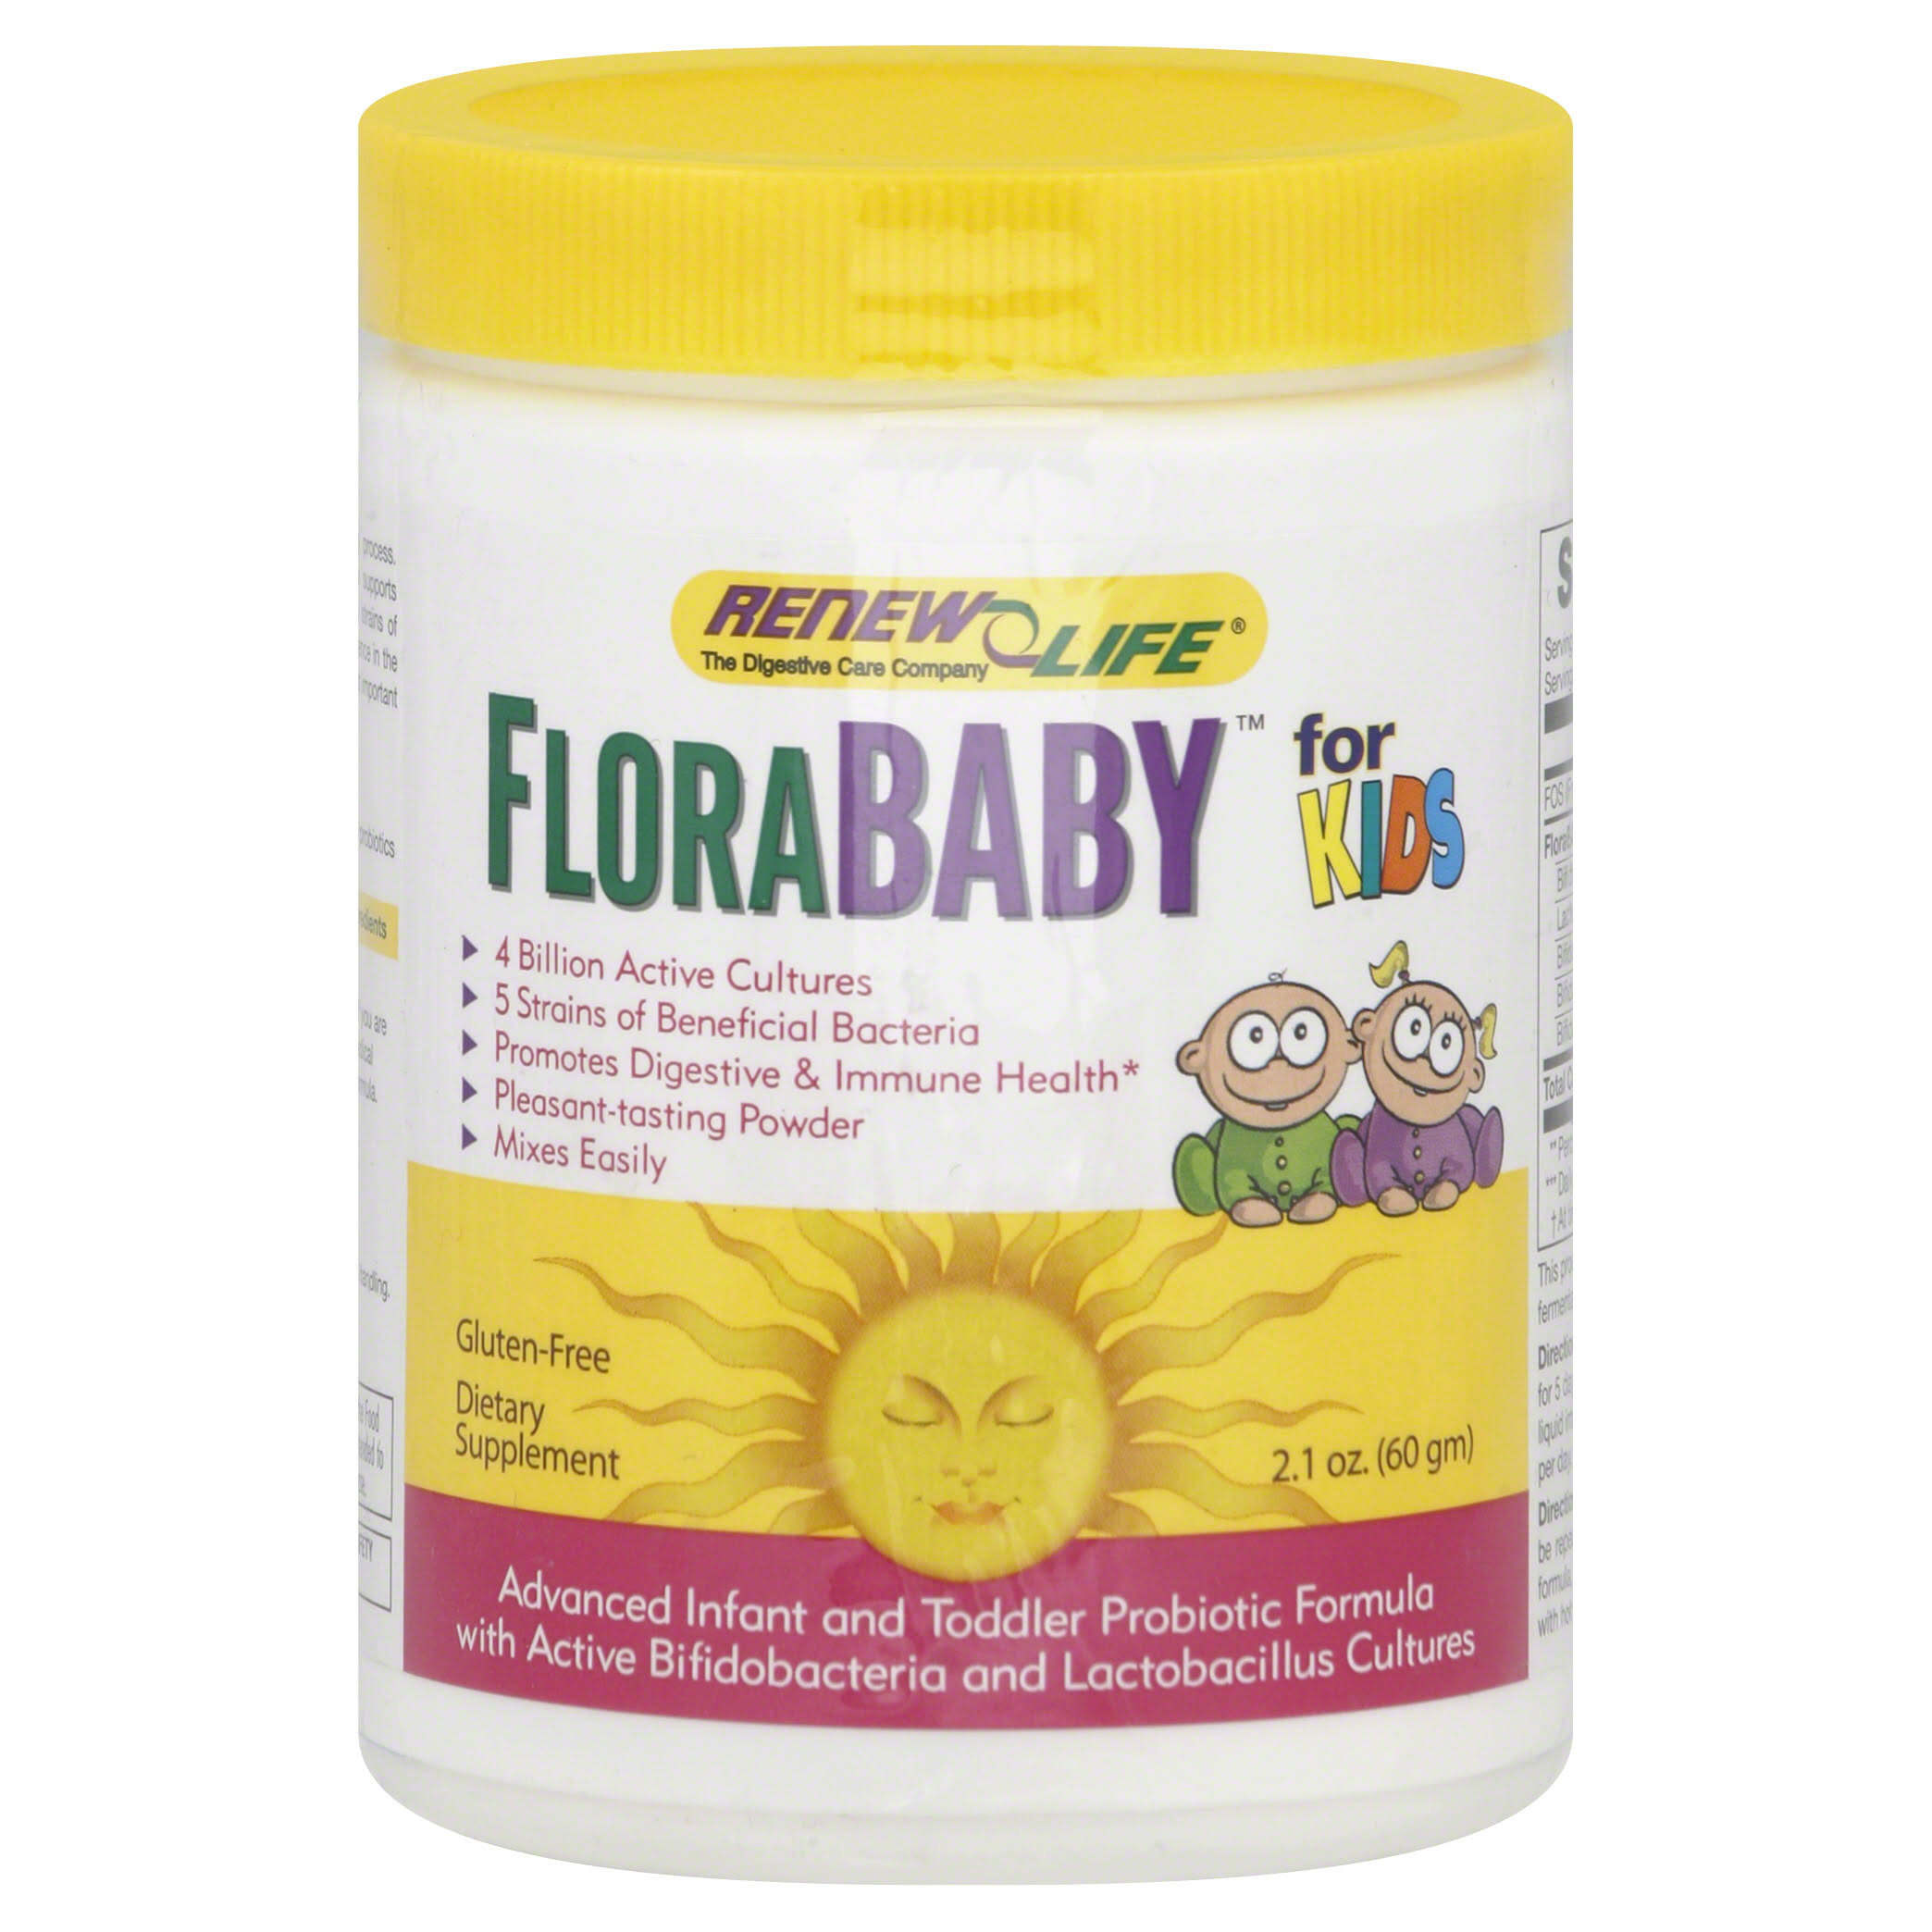 ReNew Life Flora Baby Advanced Probiotic Formula - 60g